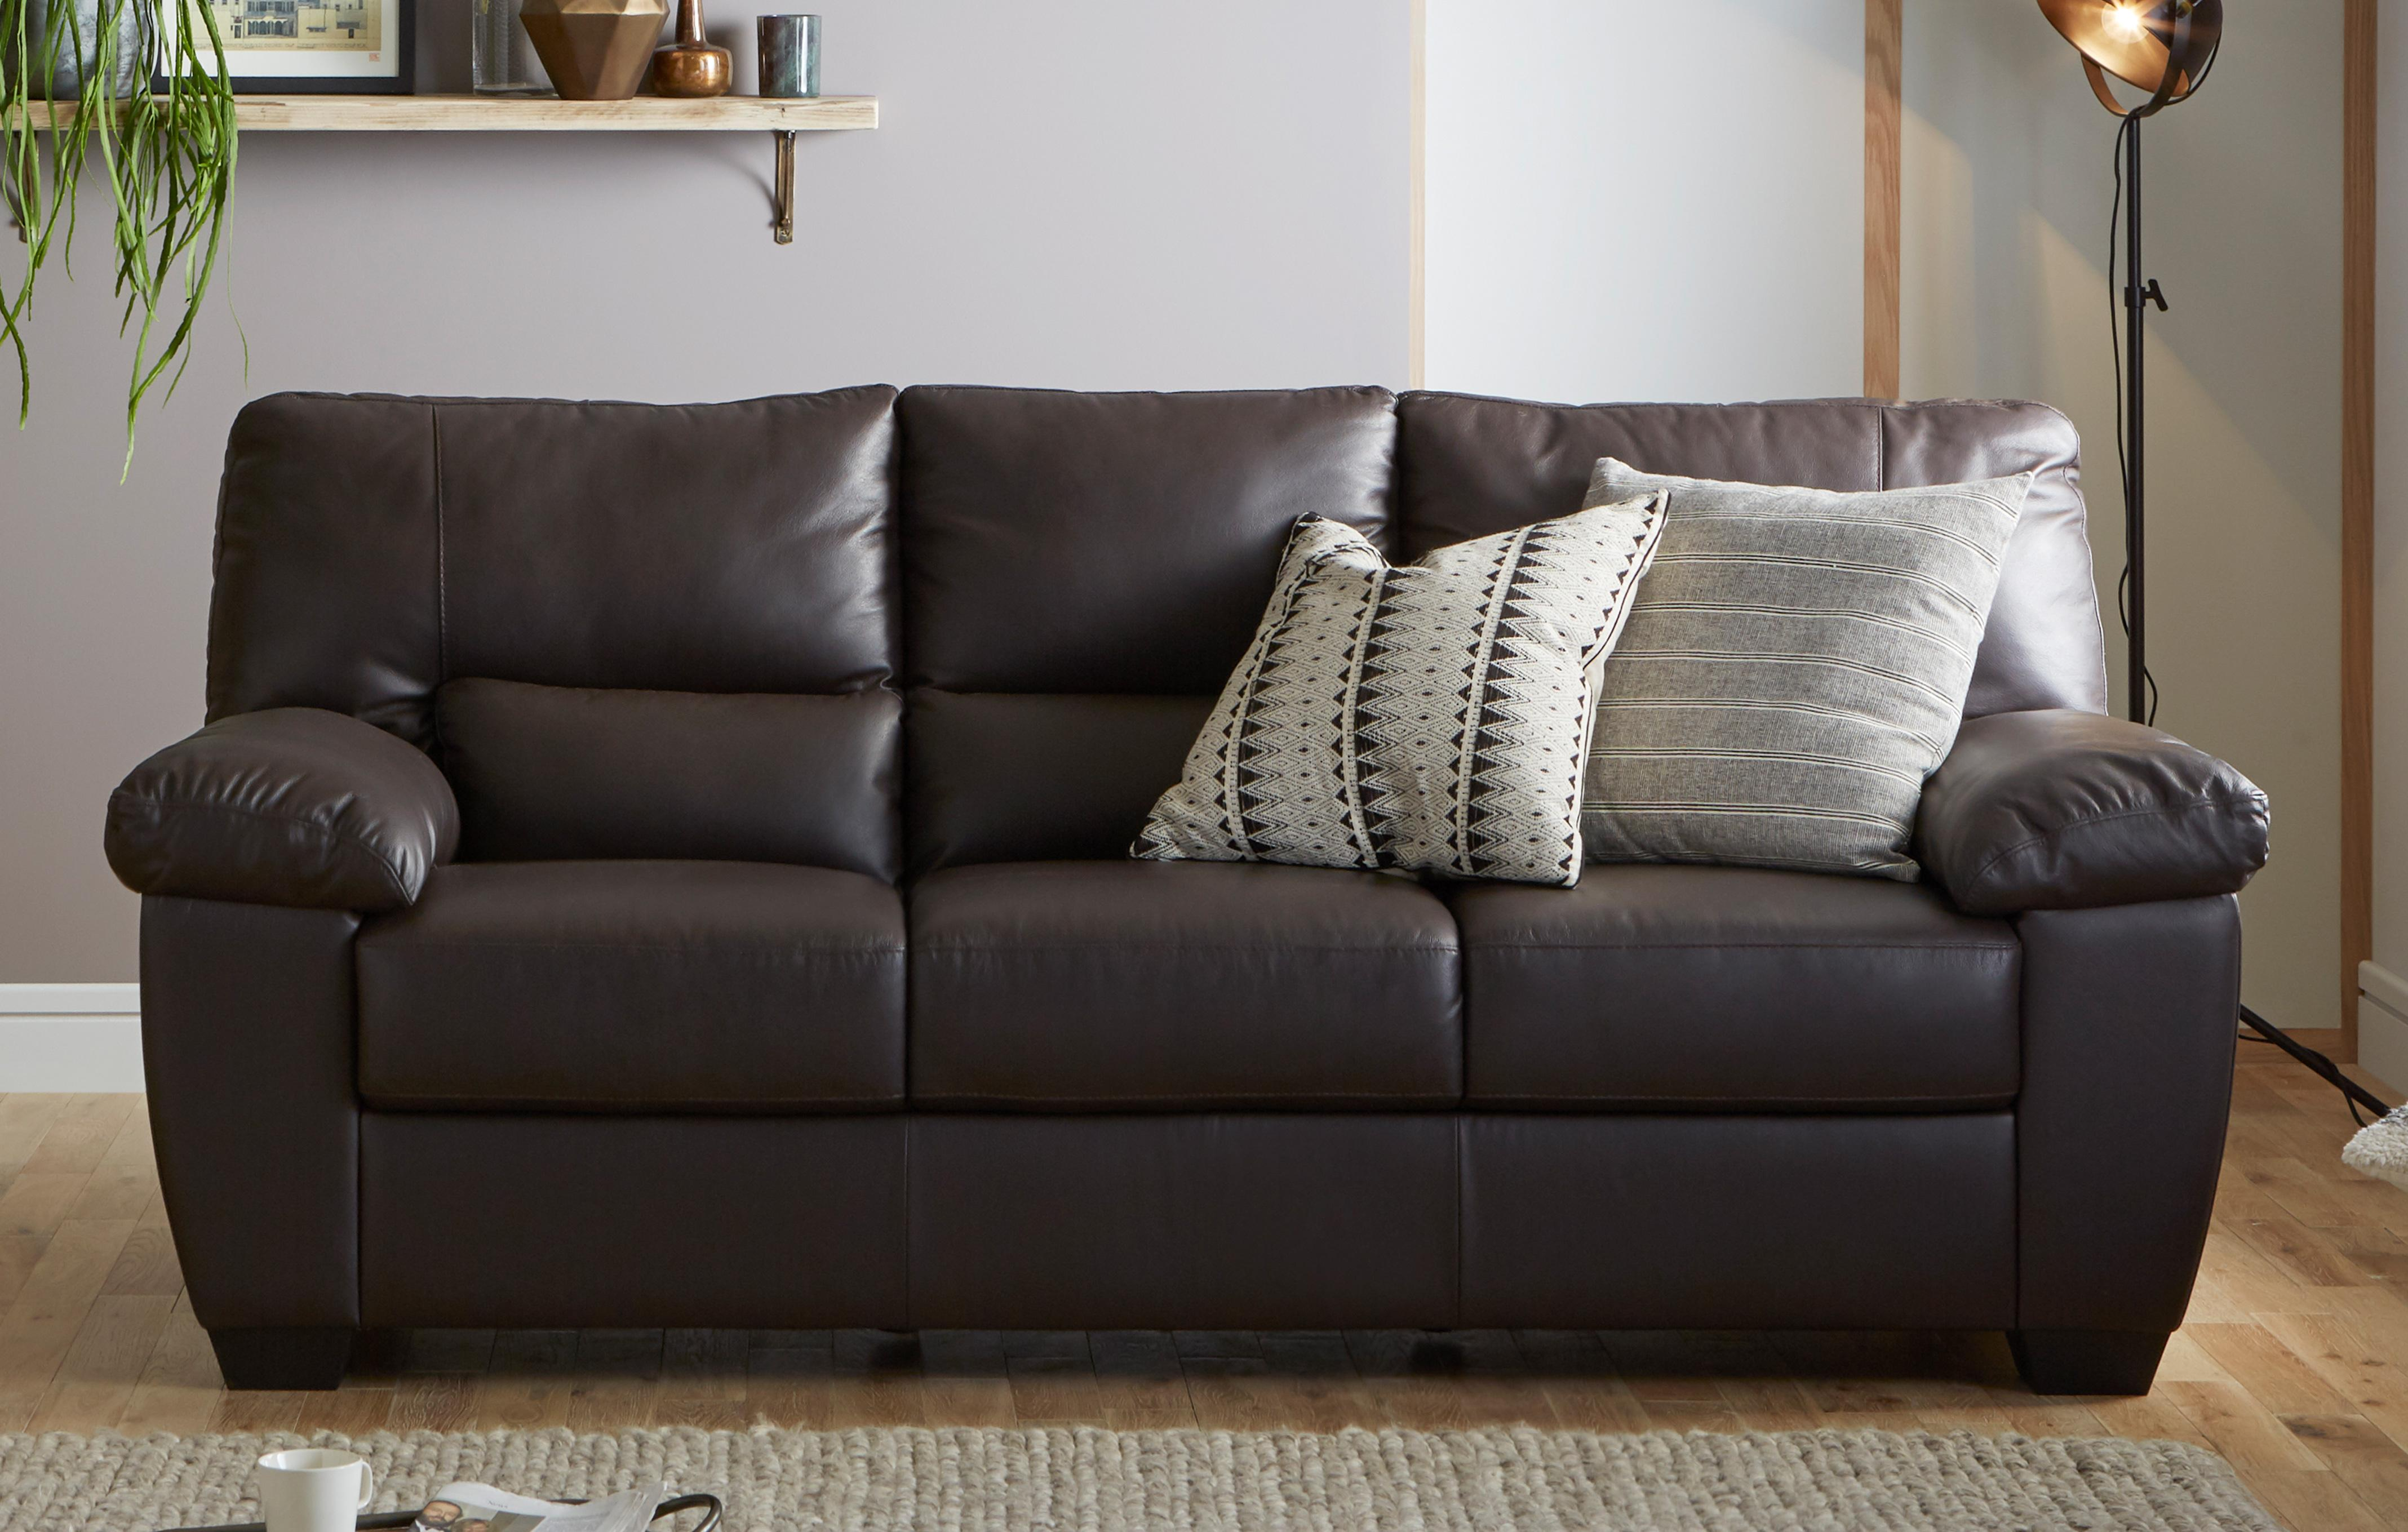 Sofas images